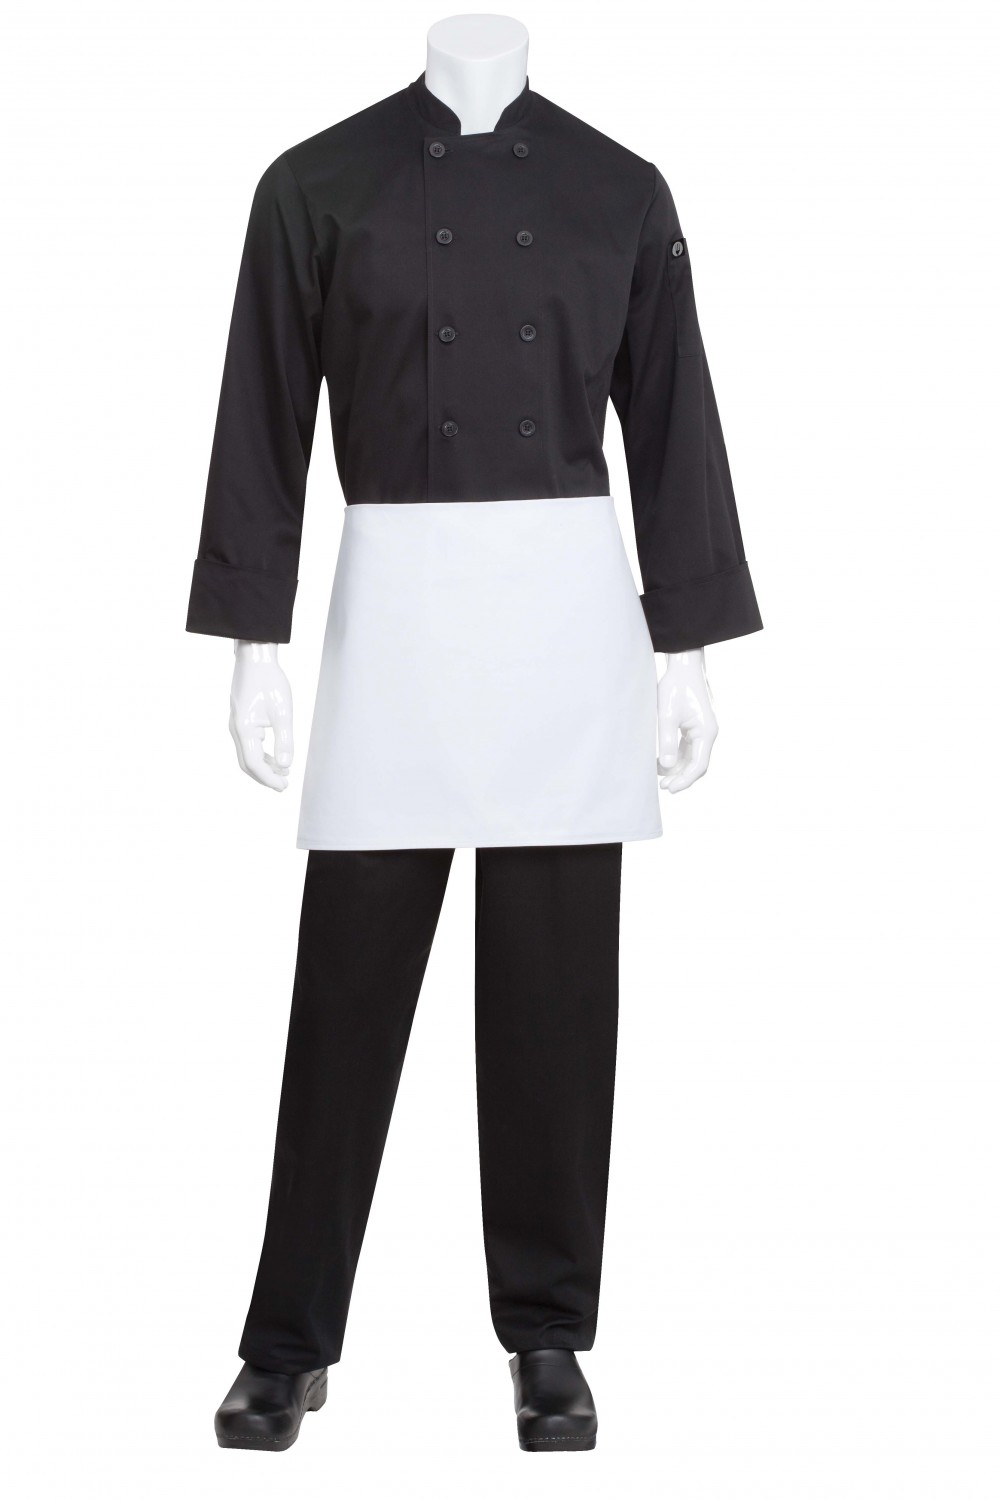 Chef Works B4 White Four-Way Apron